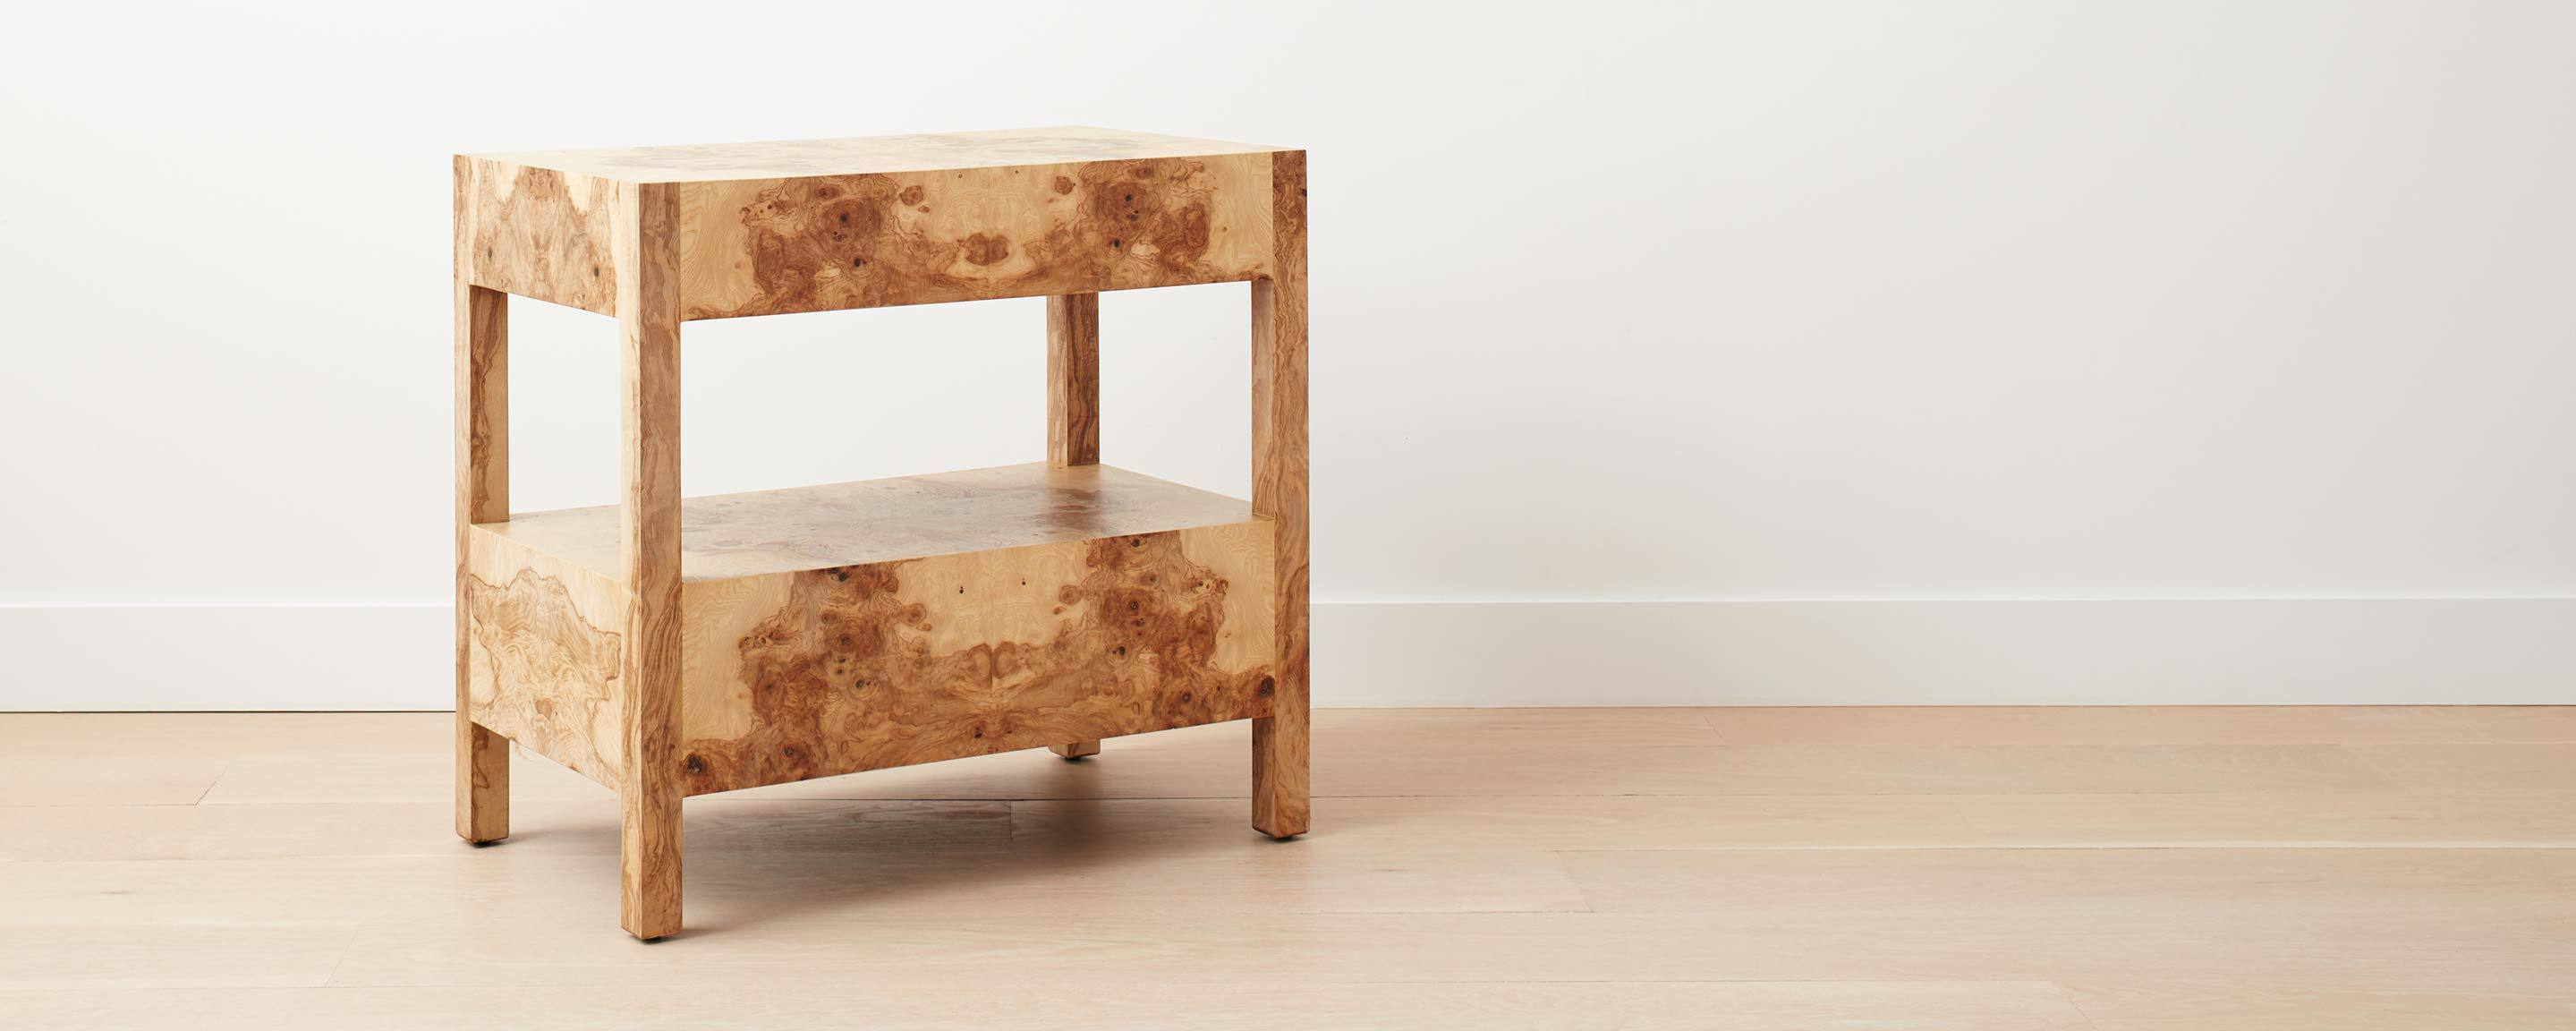 end vice the perfect real burl wood table ideas super olive ash wide nightstand homenature black living room set leons dining mirrored bar cabinet half moon side with locking